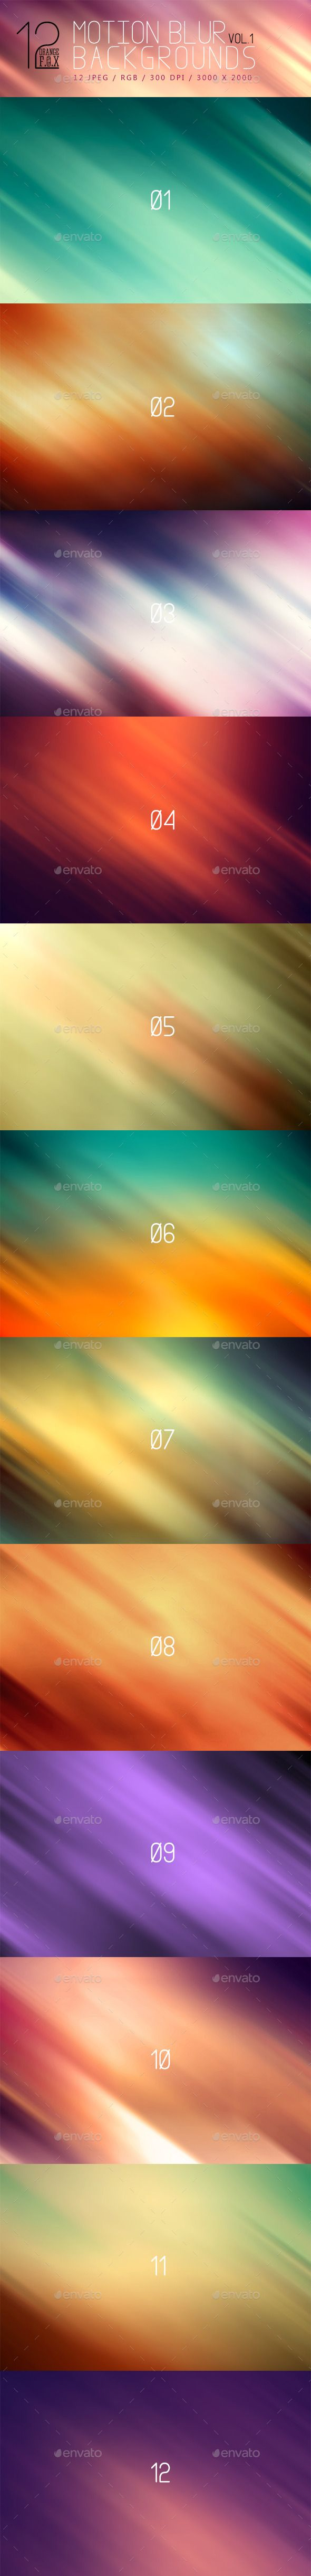 12 Motion Blur Backgrounds VOL.1   #abstract #amazing #background #blurbackground #business #clean background #color #light background #modern background #motion #motion blur #pattern #retro #Soft vintage #texture #vintage #website background